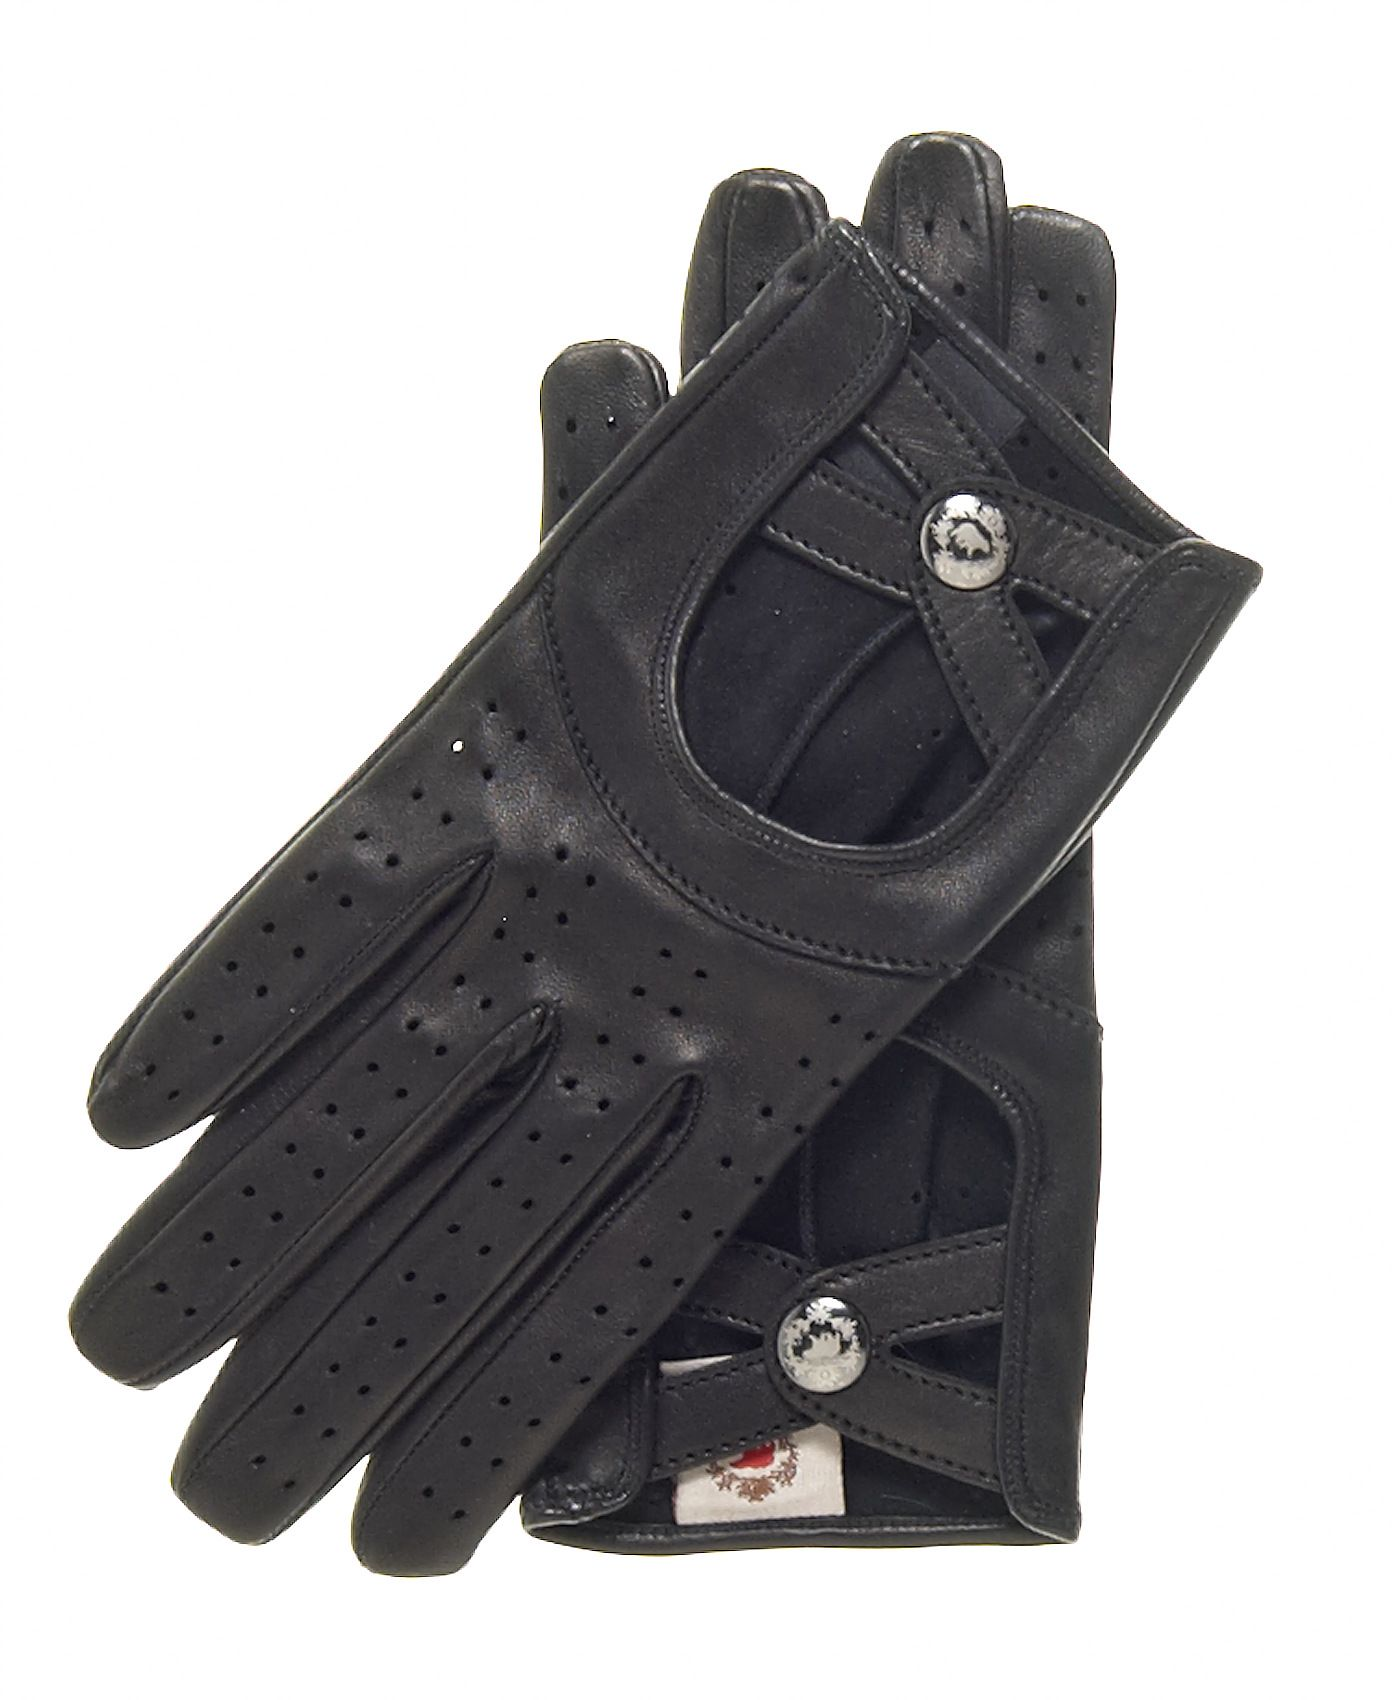 Ladies italian leather driving gloves - Women S Italian Leather Driving Gloves By Fratelli Orsini Free Usa Shipping At Leather Gloves Online